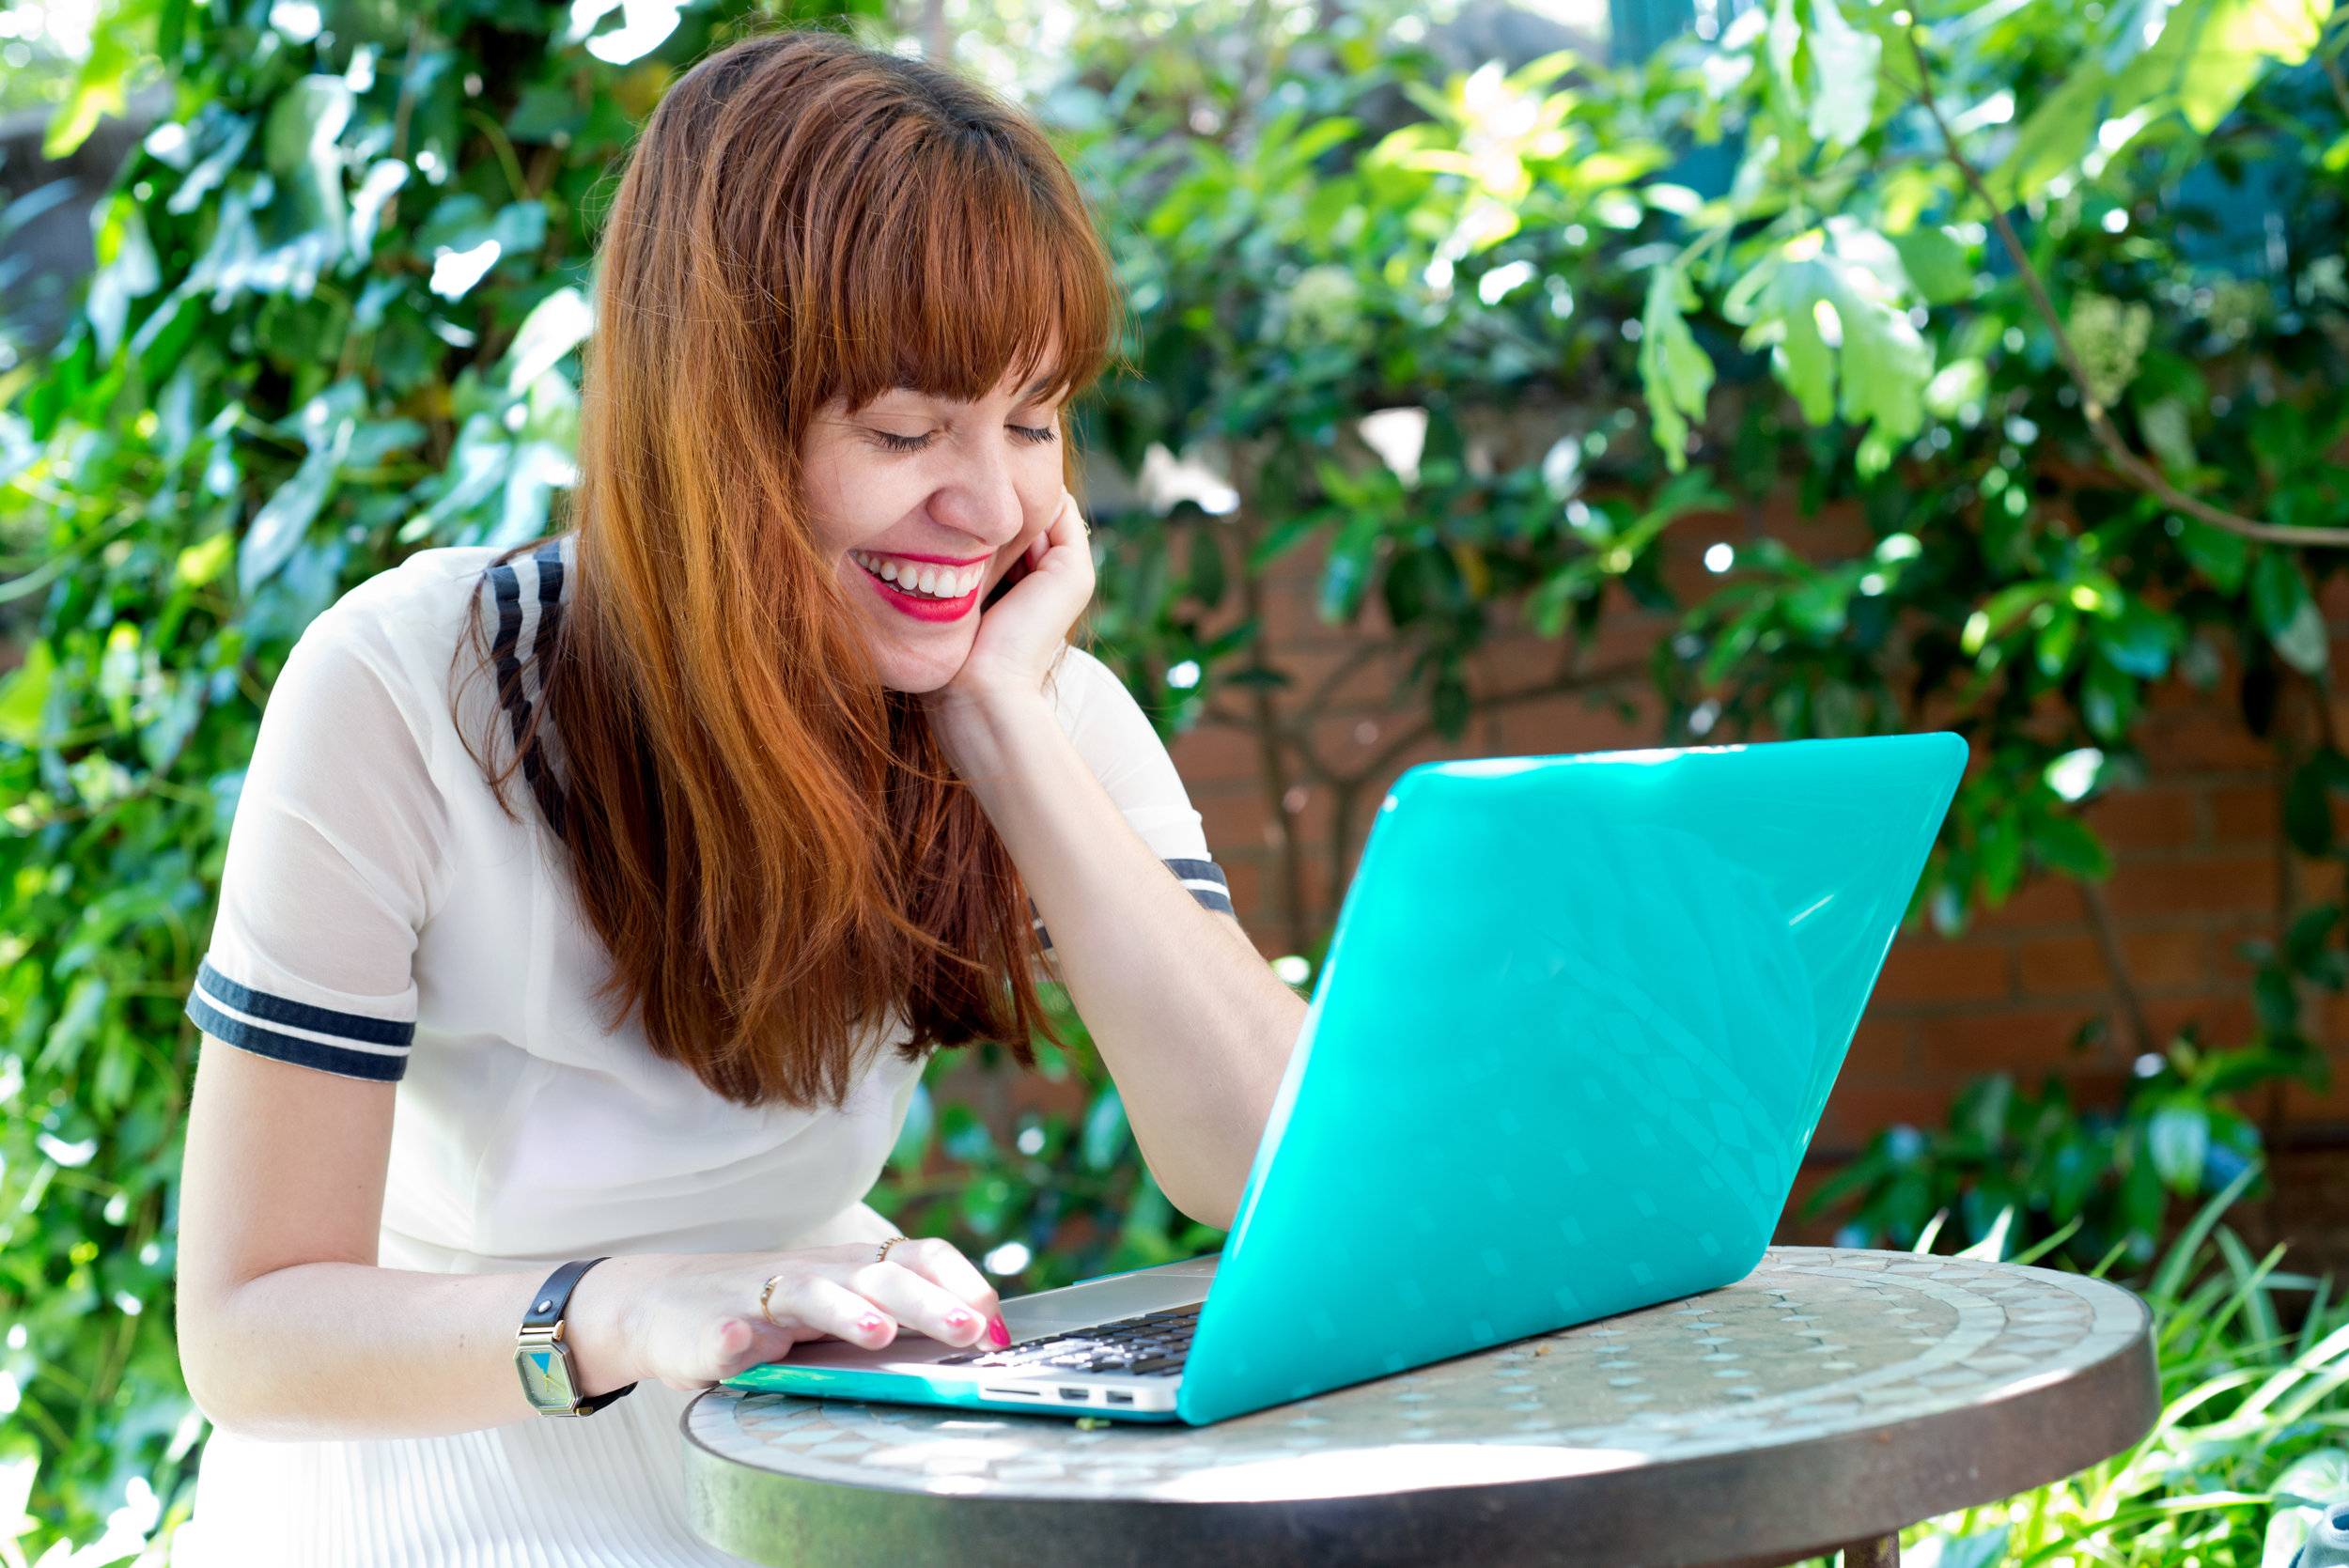 Laughing woman with laptop.jpg